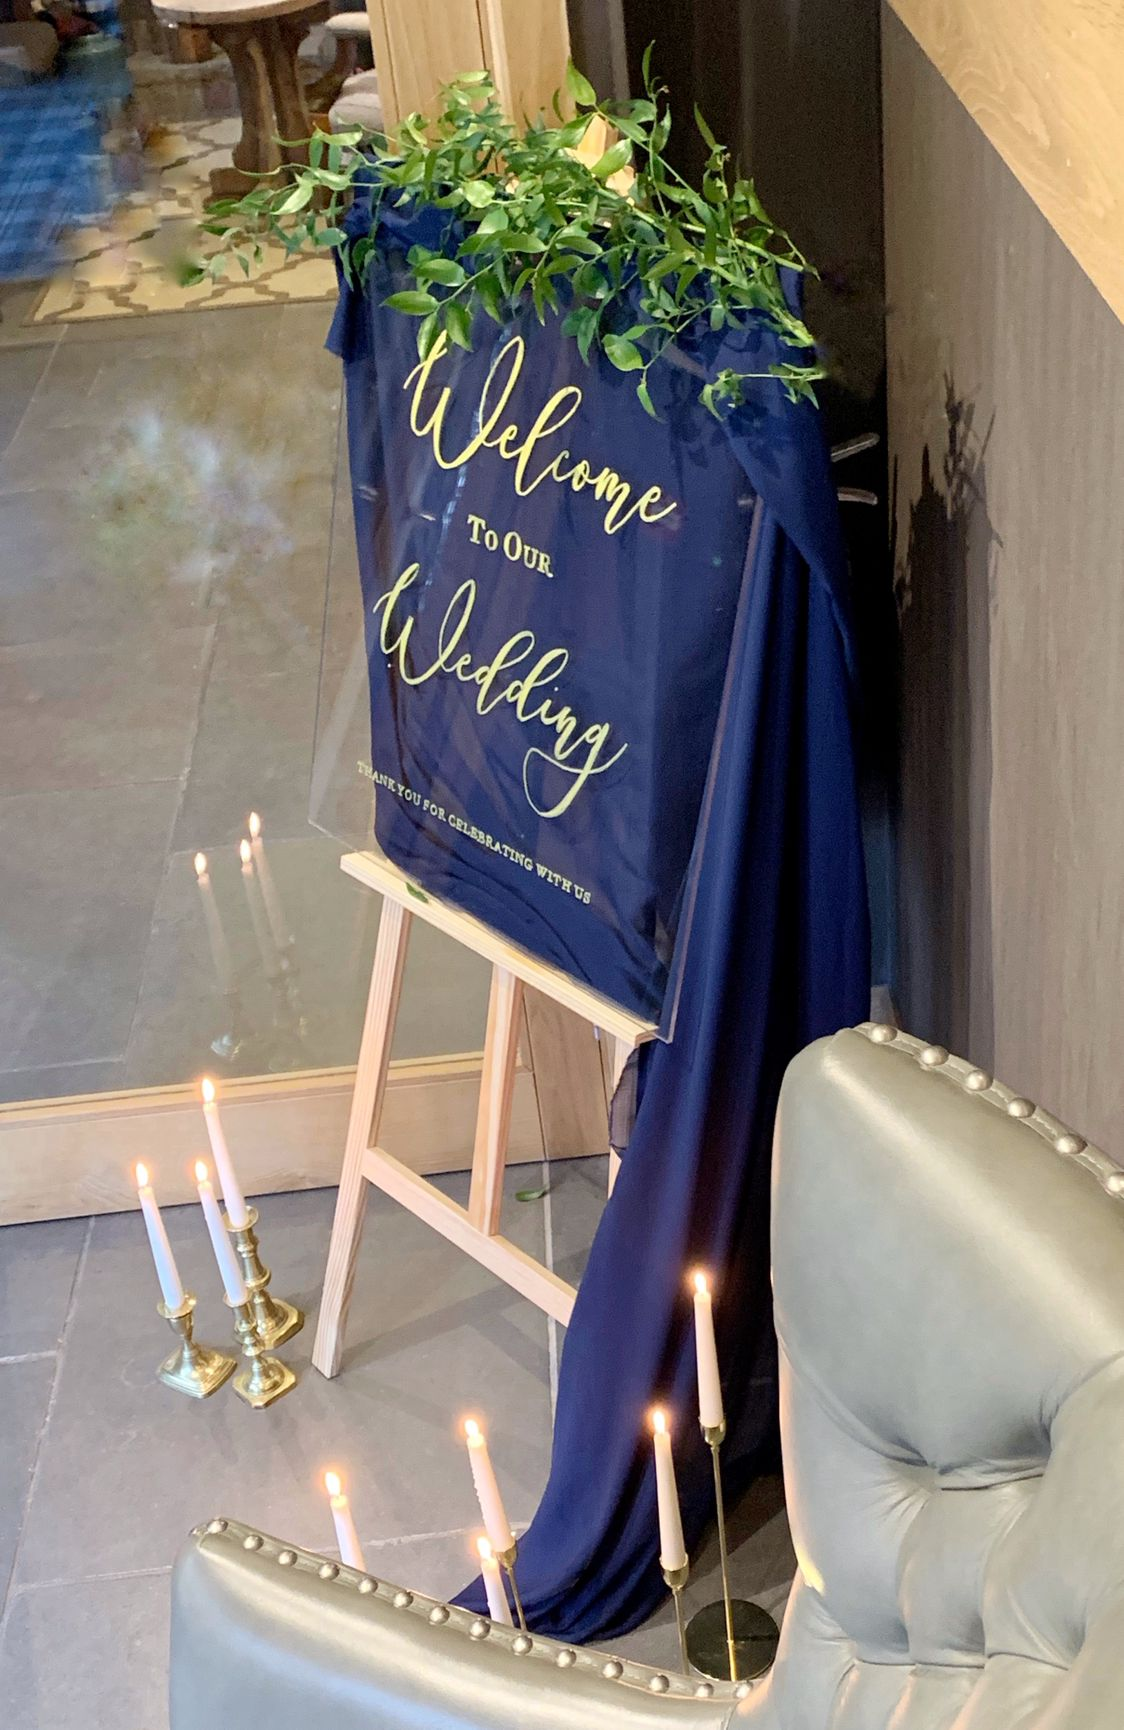 acrylic welcome to our wedding sign with classic blue fabric candles